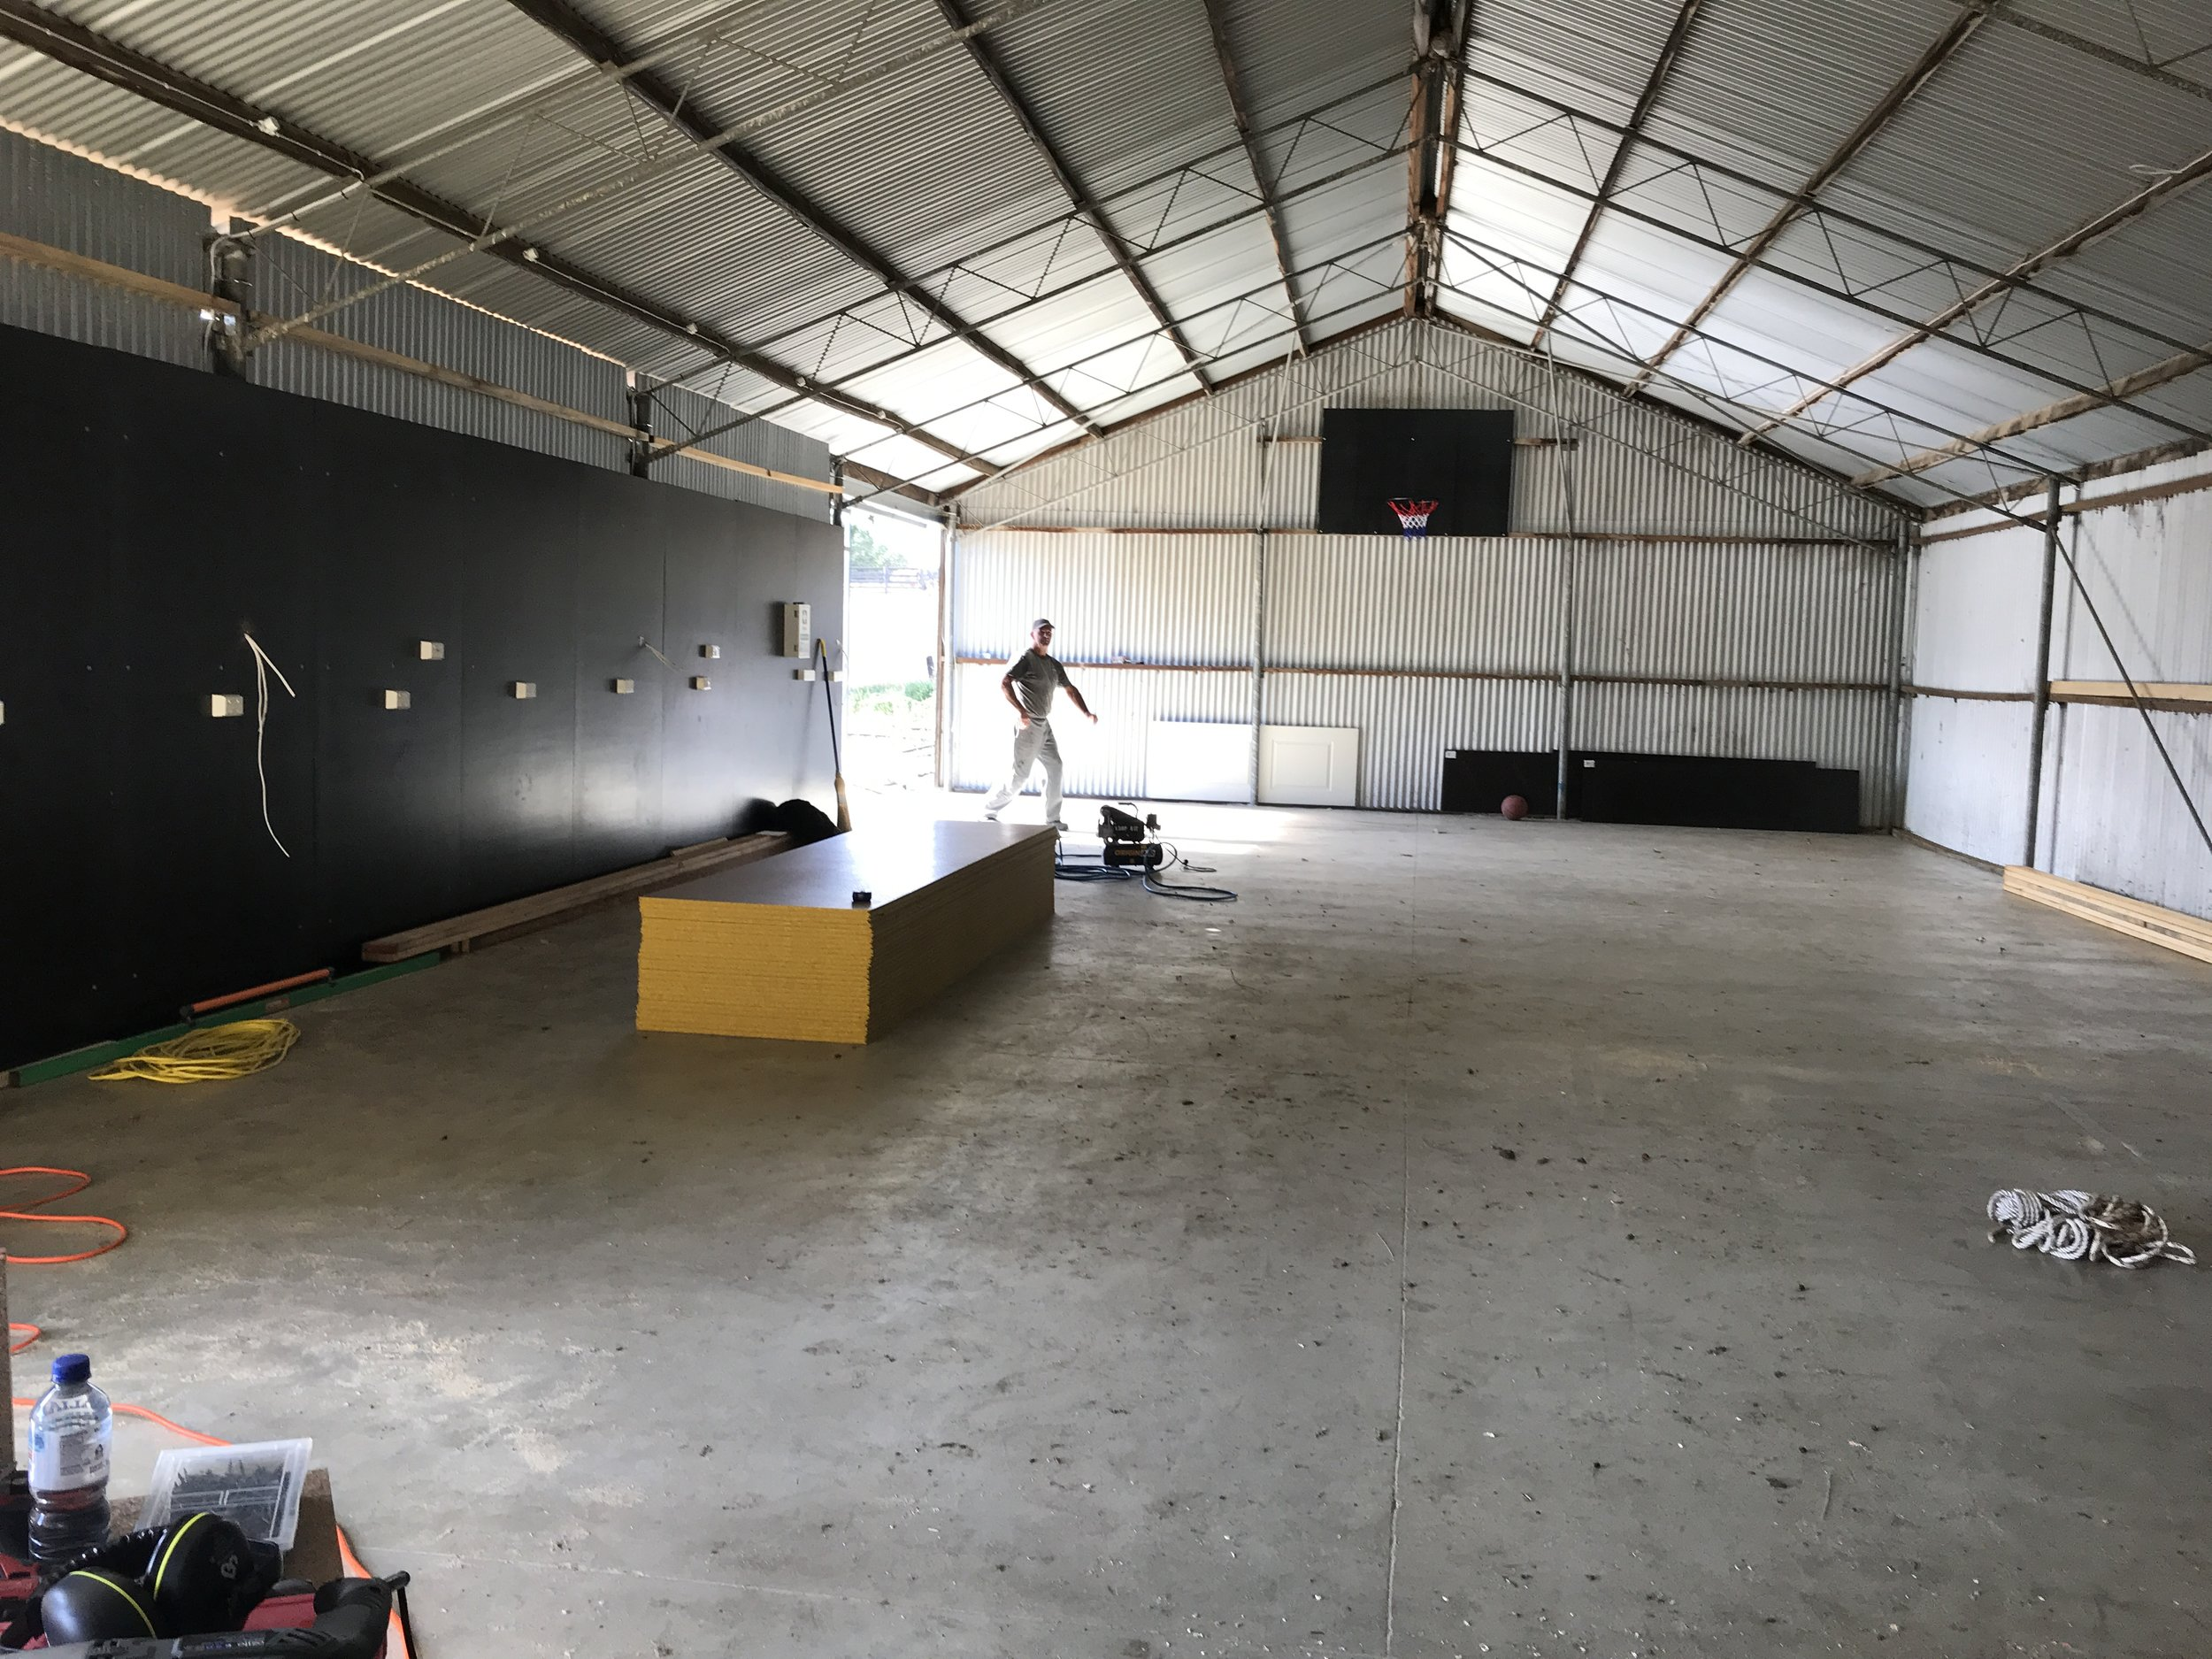 Completed concrete floor of future work shed.